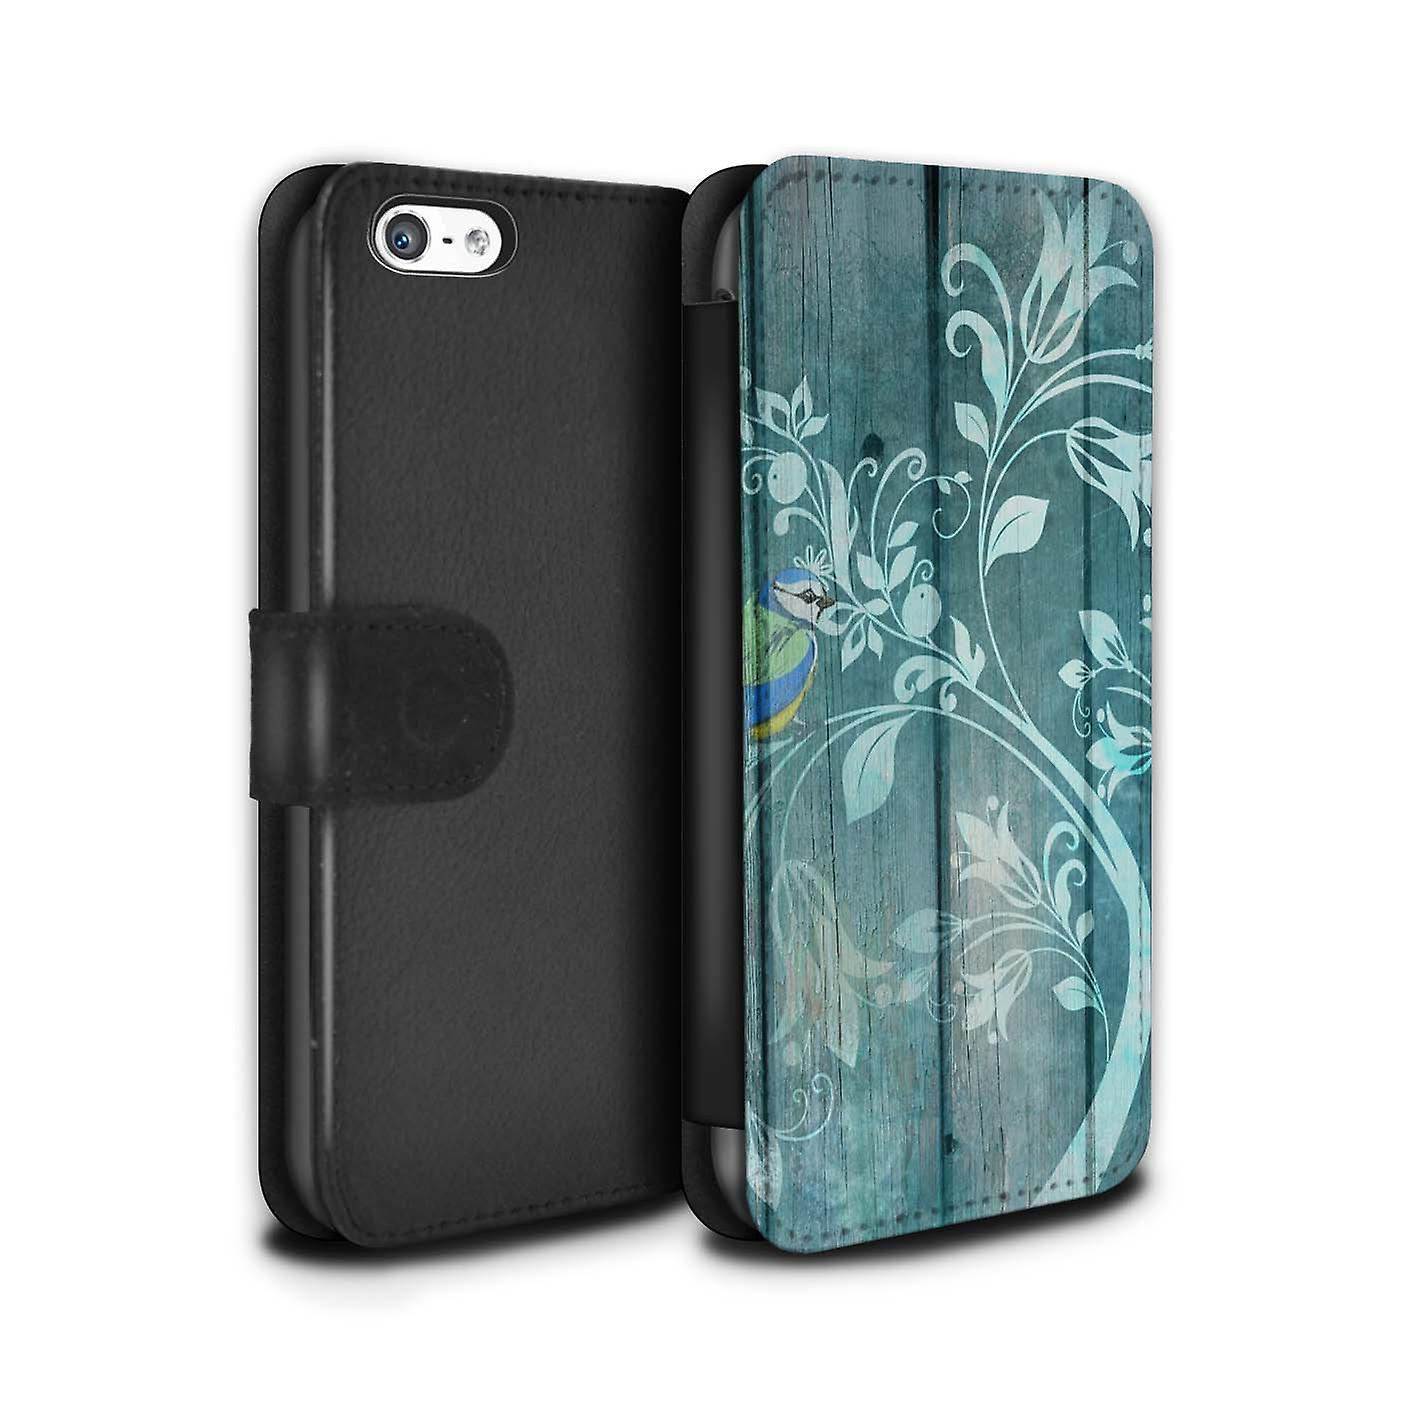 promo code df577 b6c34 STUFF4 PU Leather Wallet Flip Case/Cover for Apple iPhone 5C / Jade Tree  Design / Winter Fashion Collection